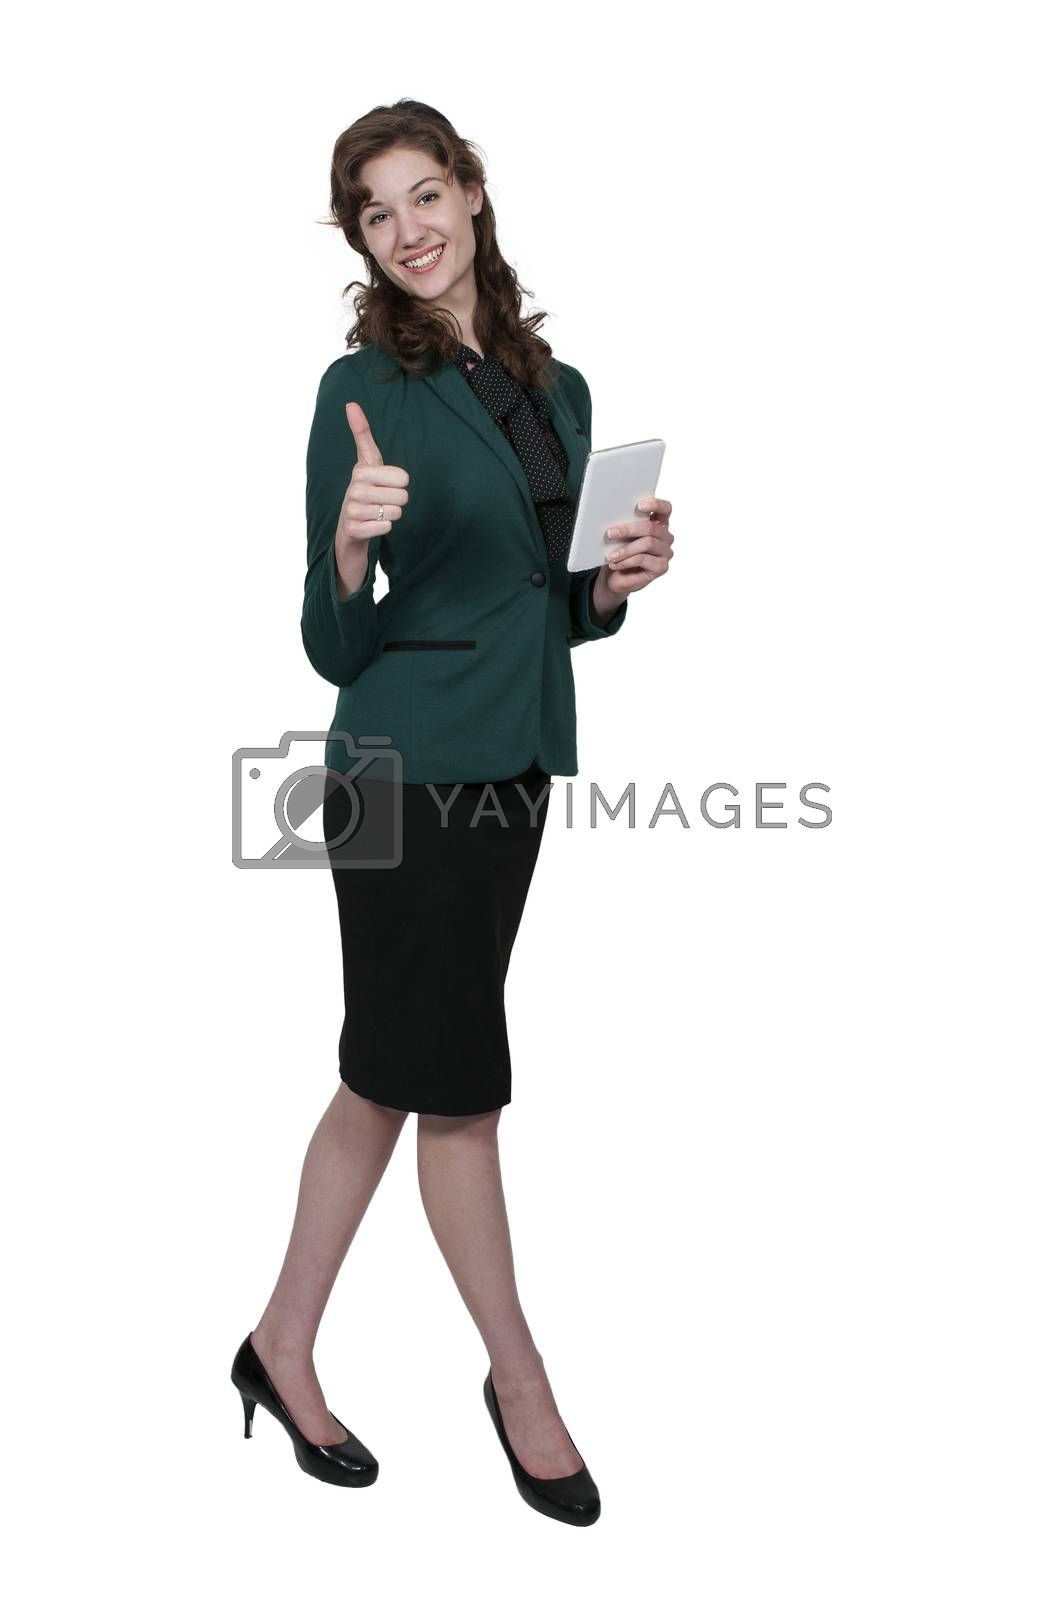 Beautiful technologically savvy woman using a tablet